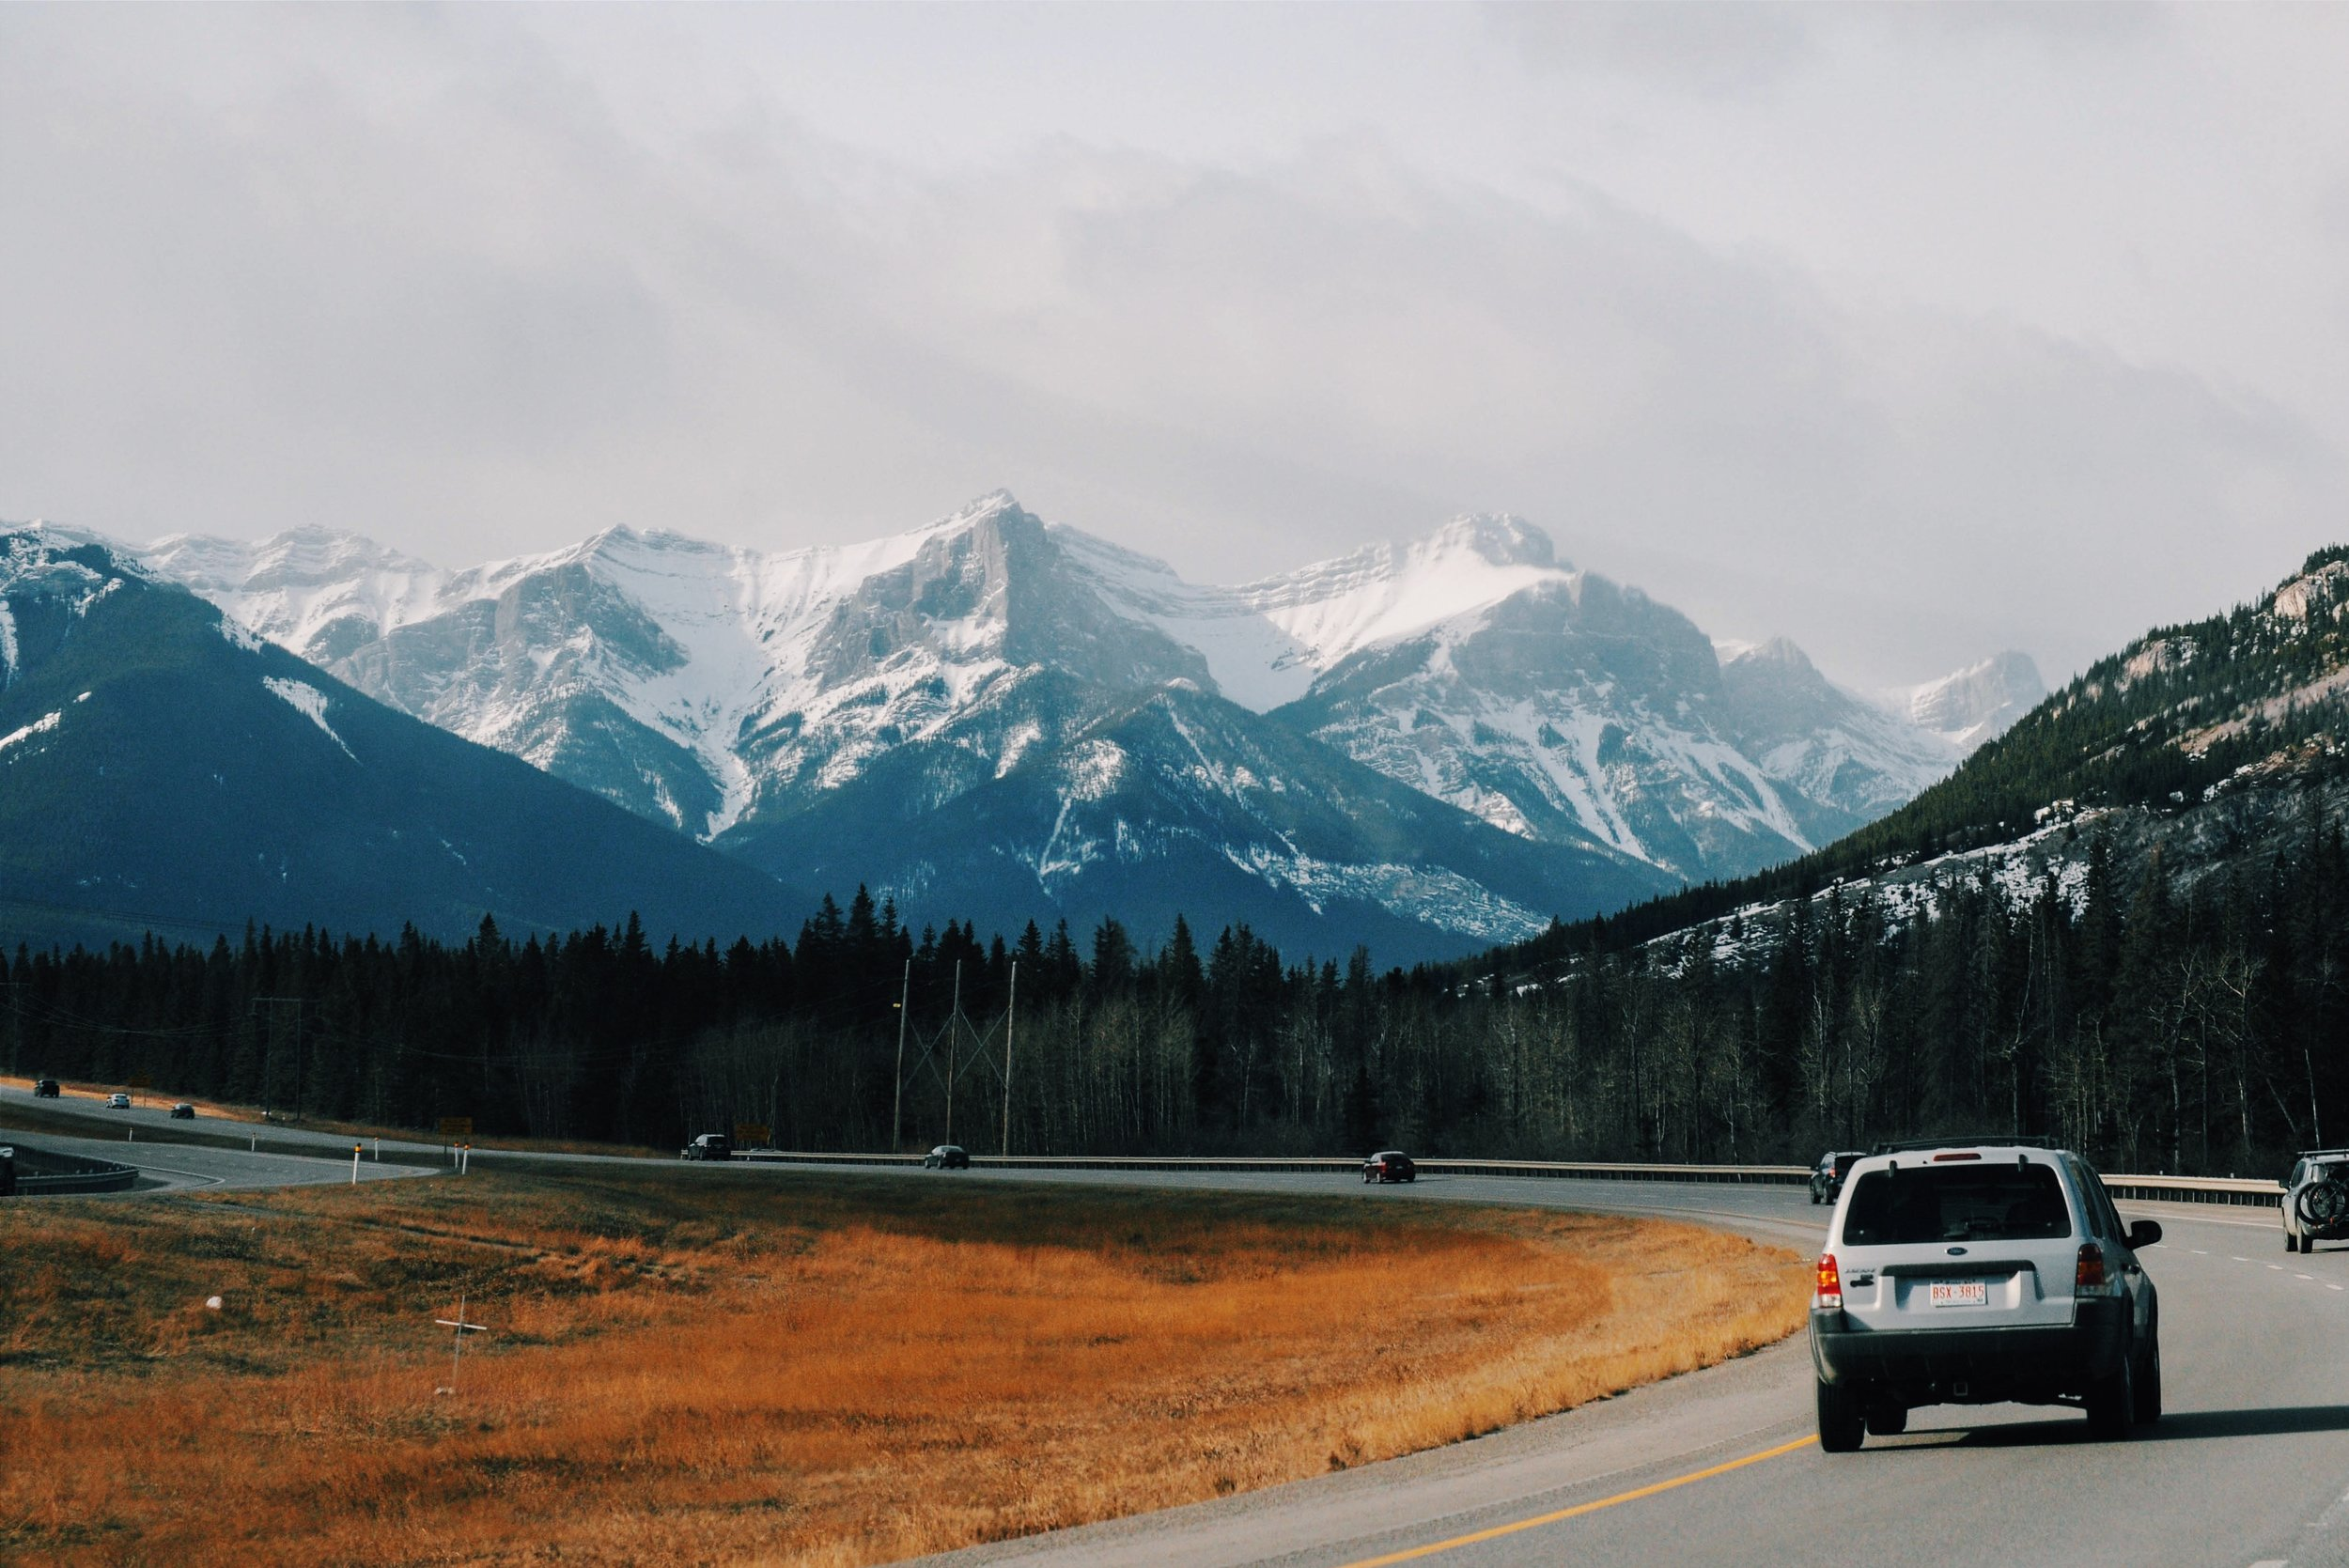 Driving the highway in the Canadian Rockies